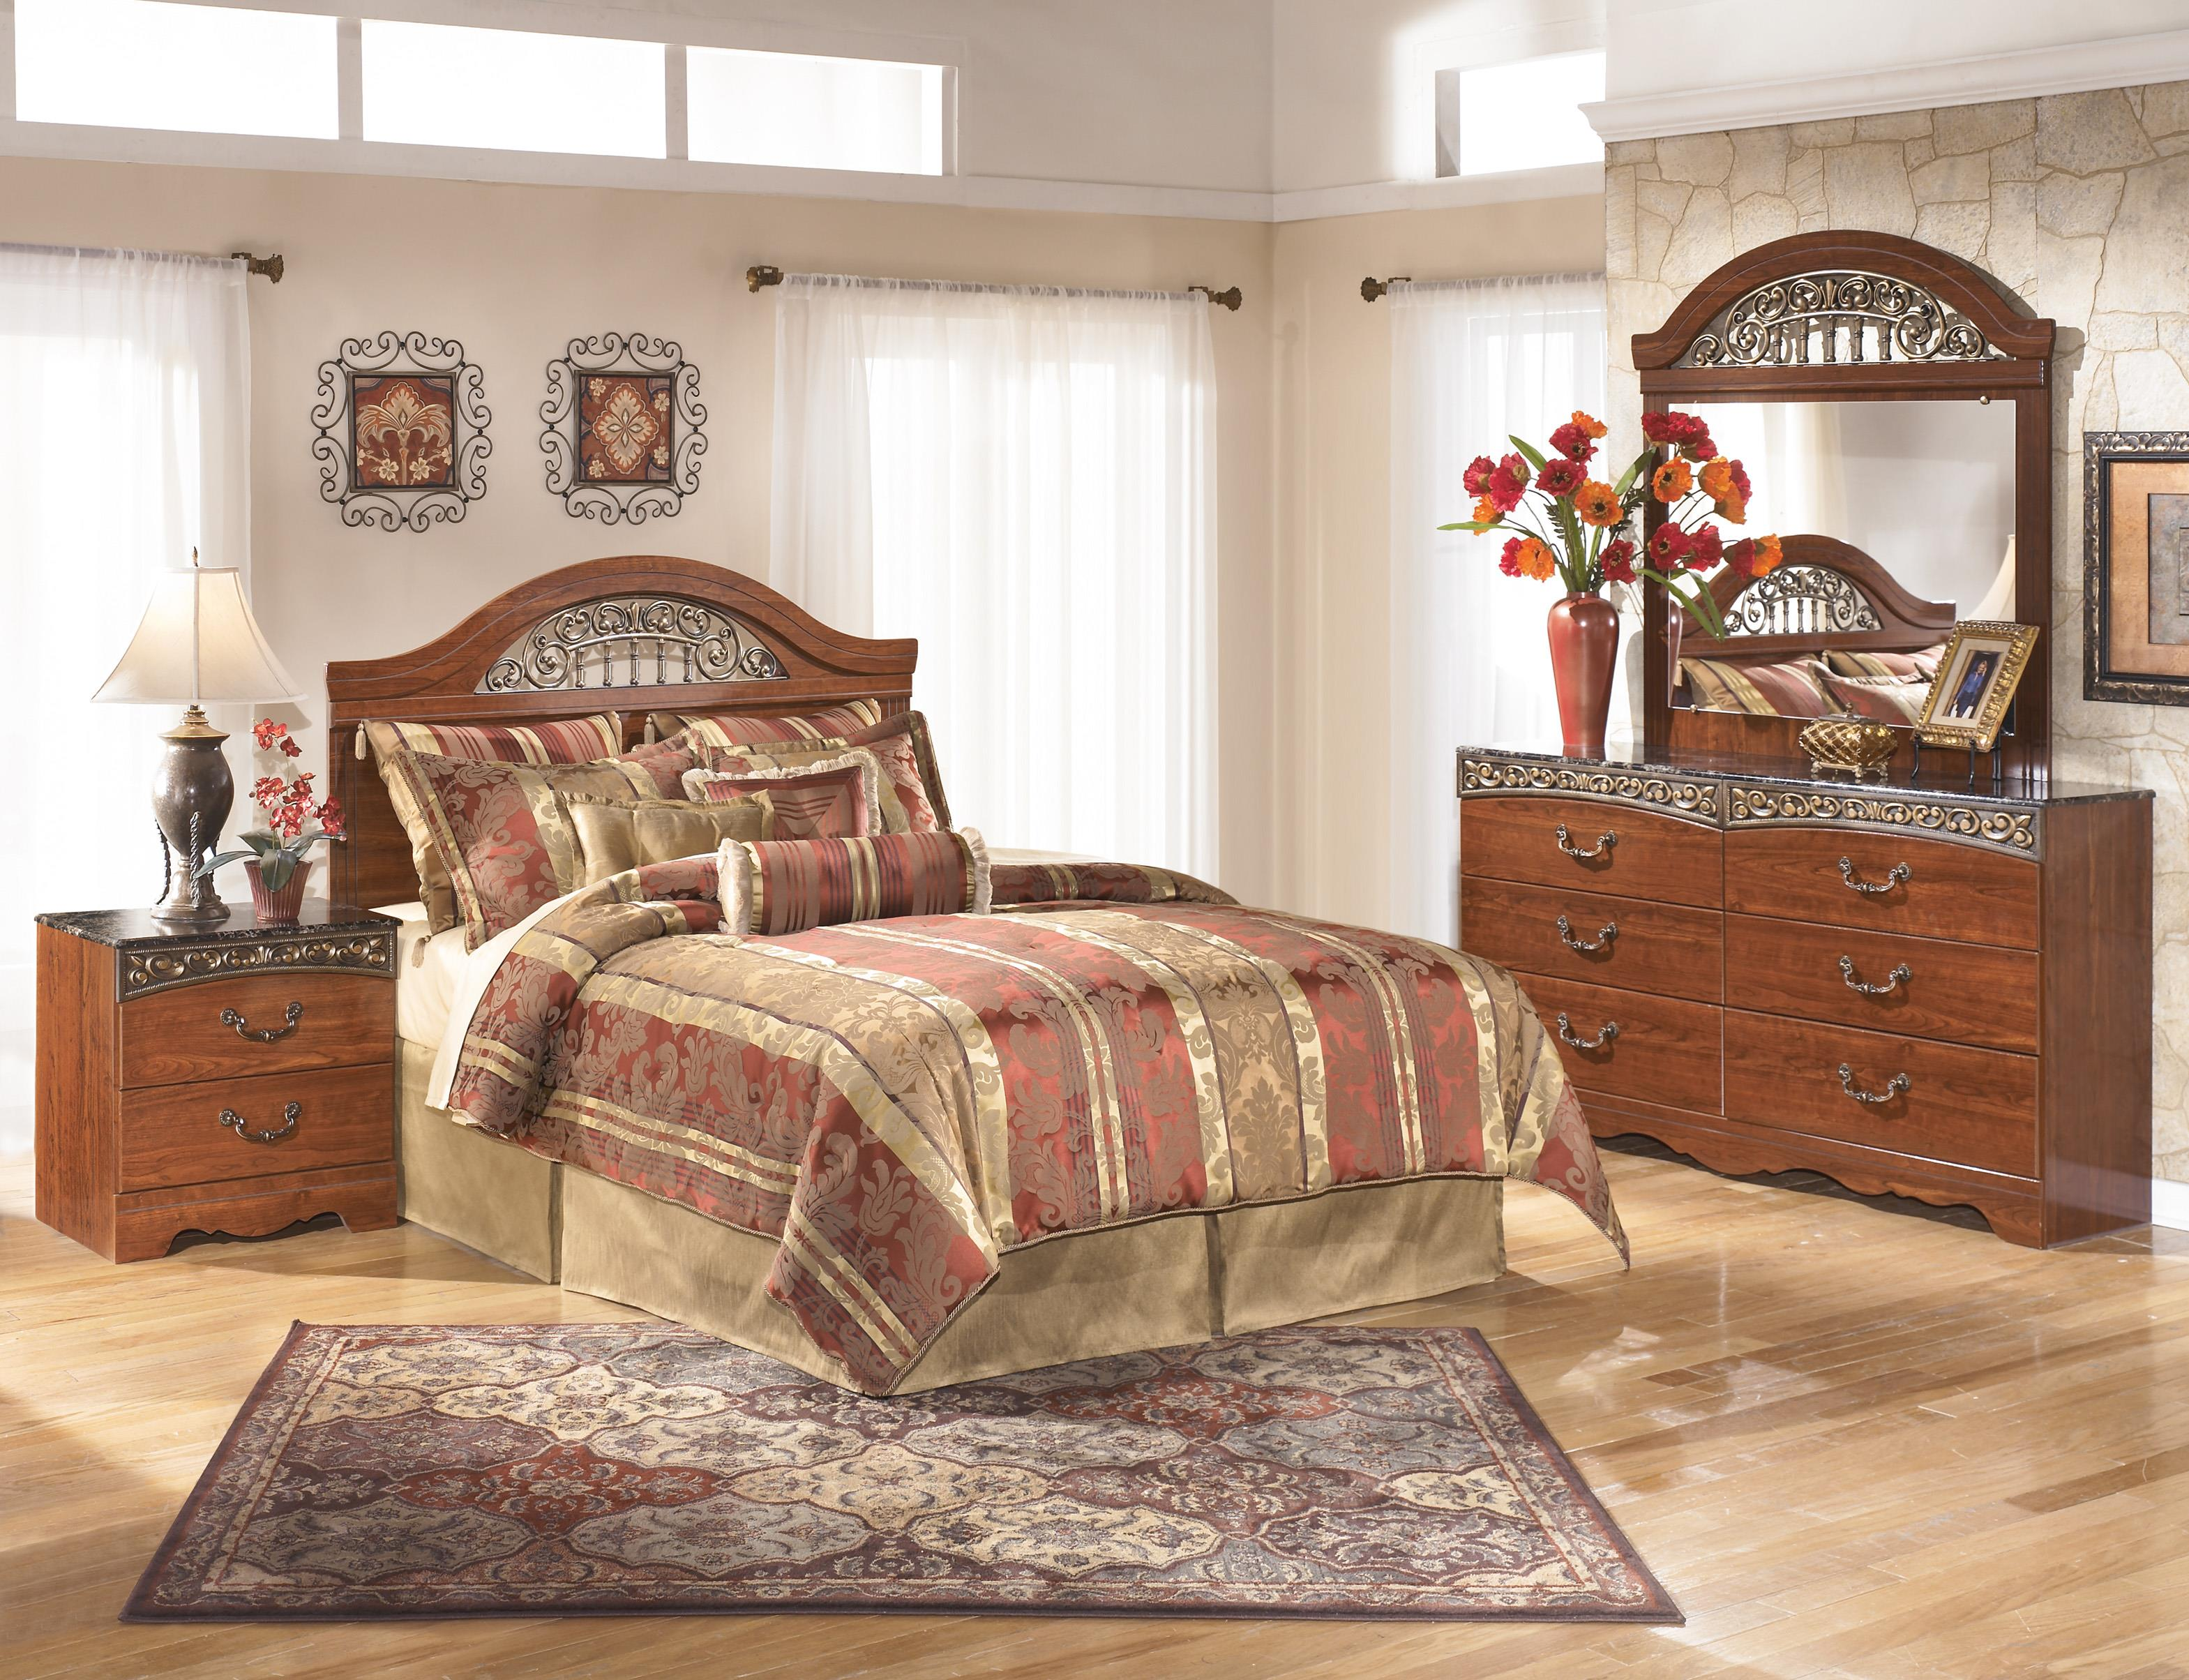 Signature Design By Ashley Fairbrooks Estate Queen Bedroom Group Household Furniture Bedroom